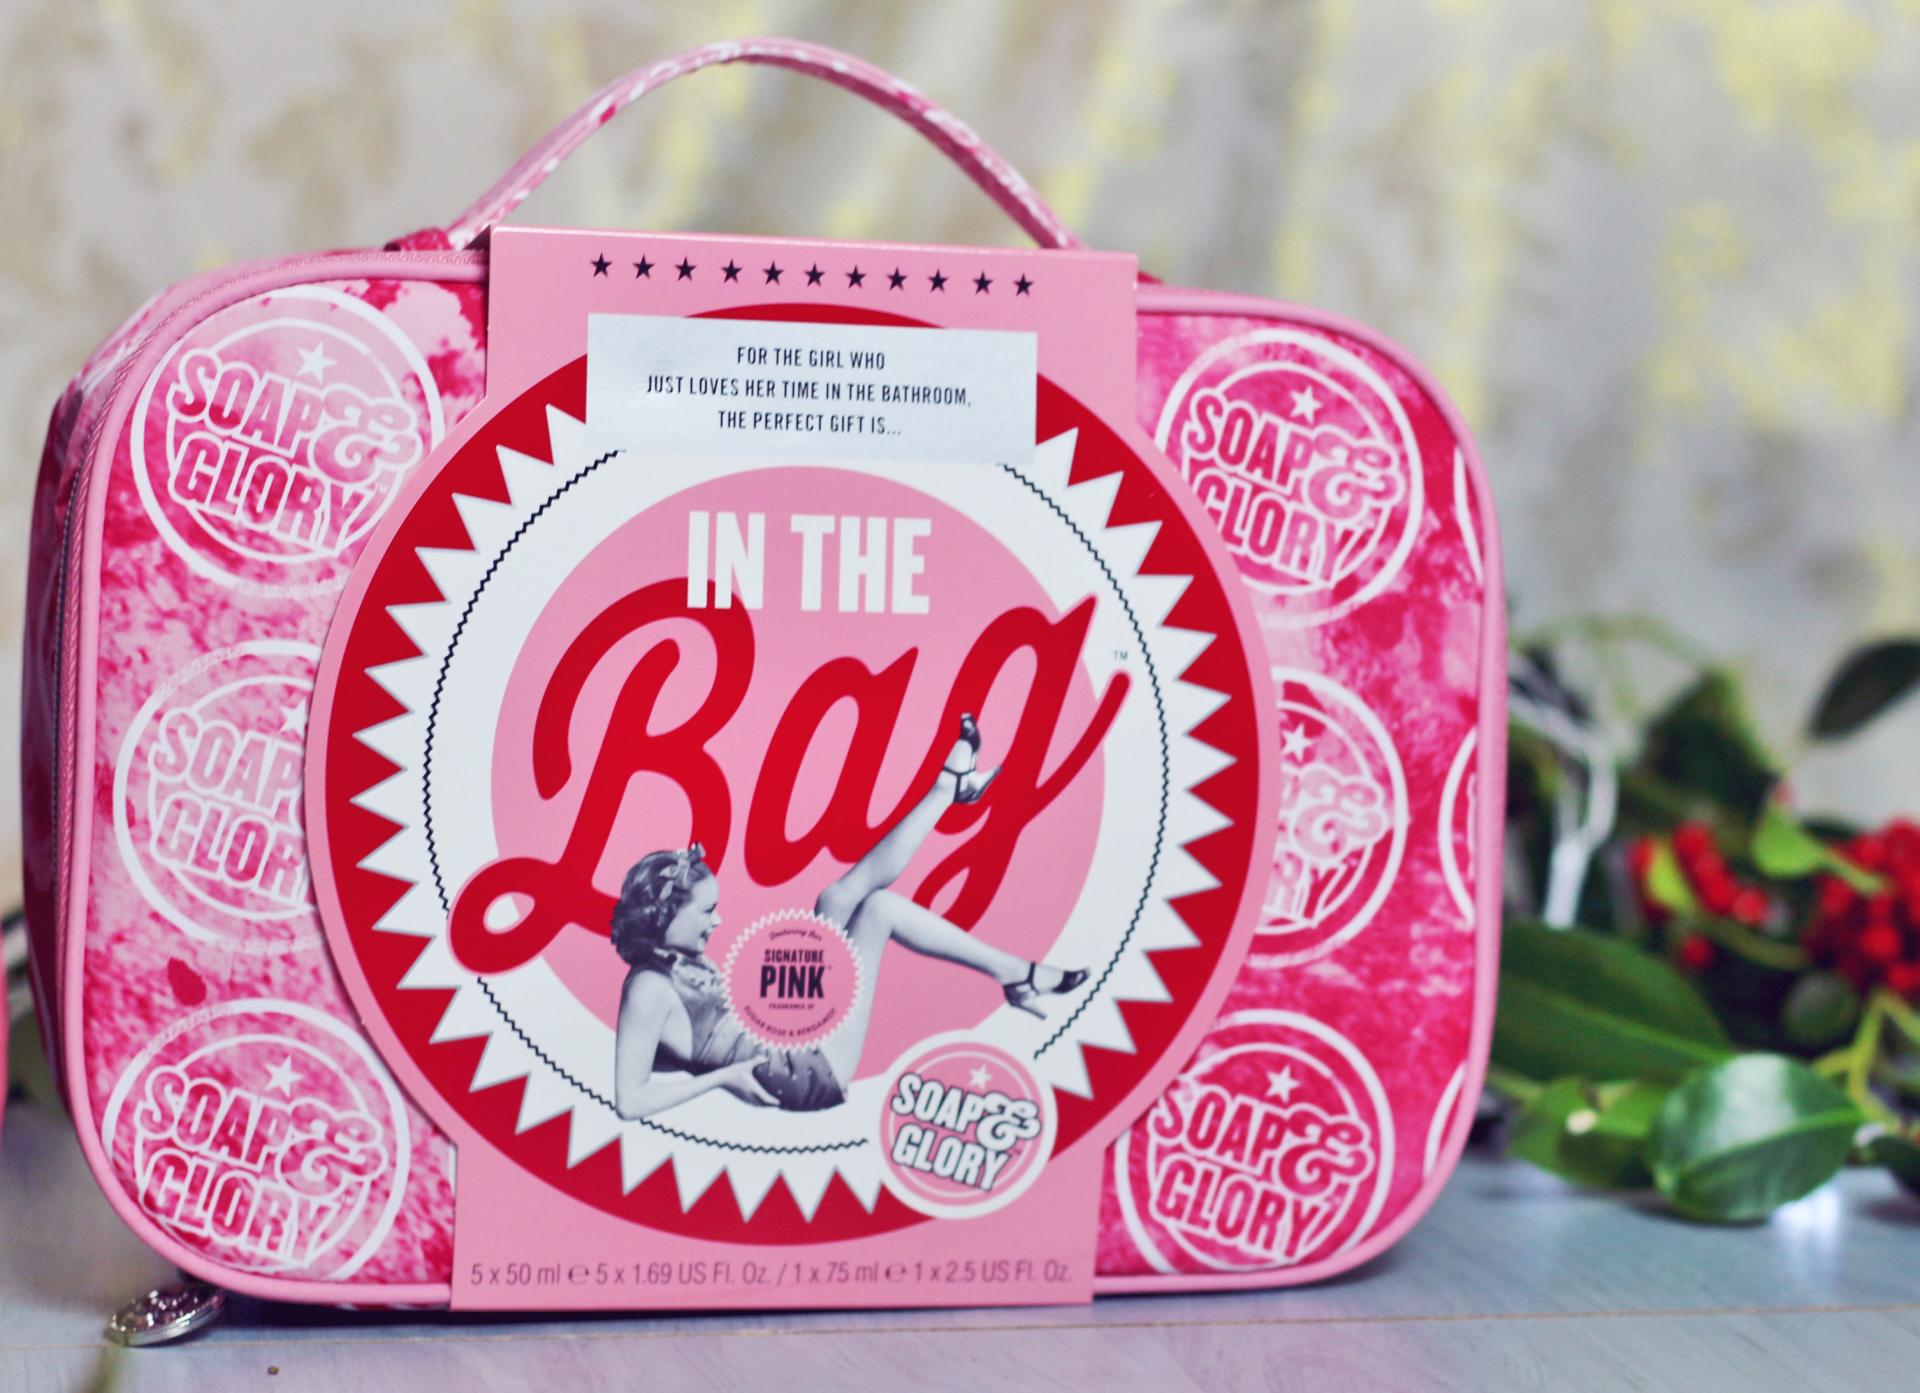 Soap and Glory Christmas Gift Sets 2015 - Lily Kitten | Manchester ...